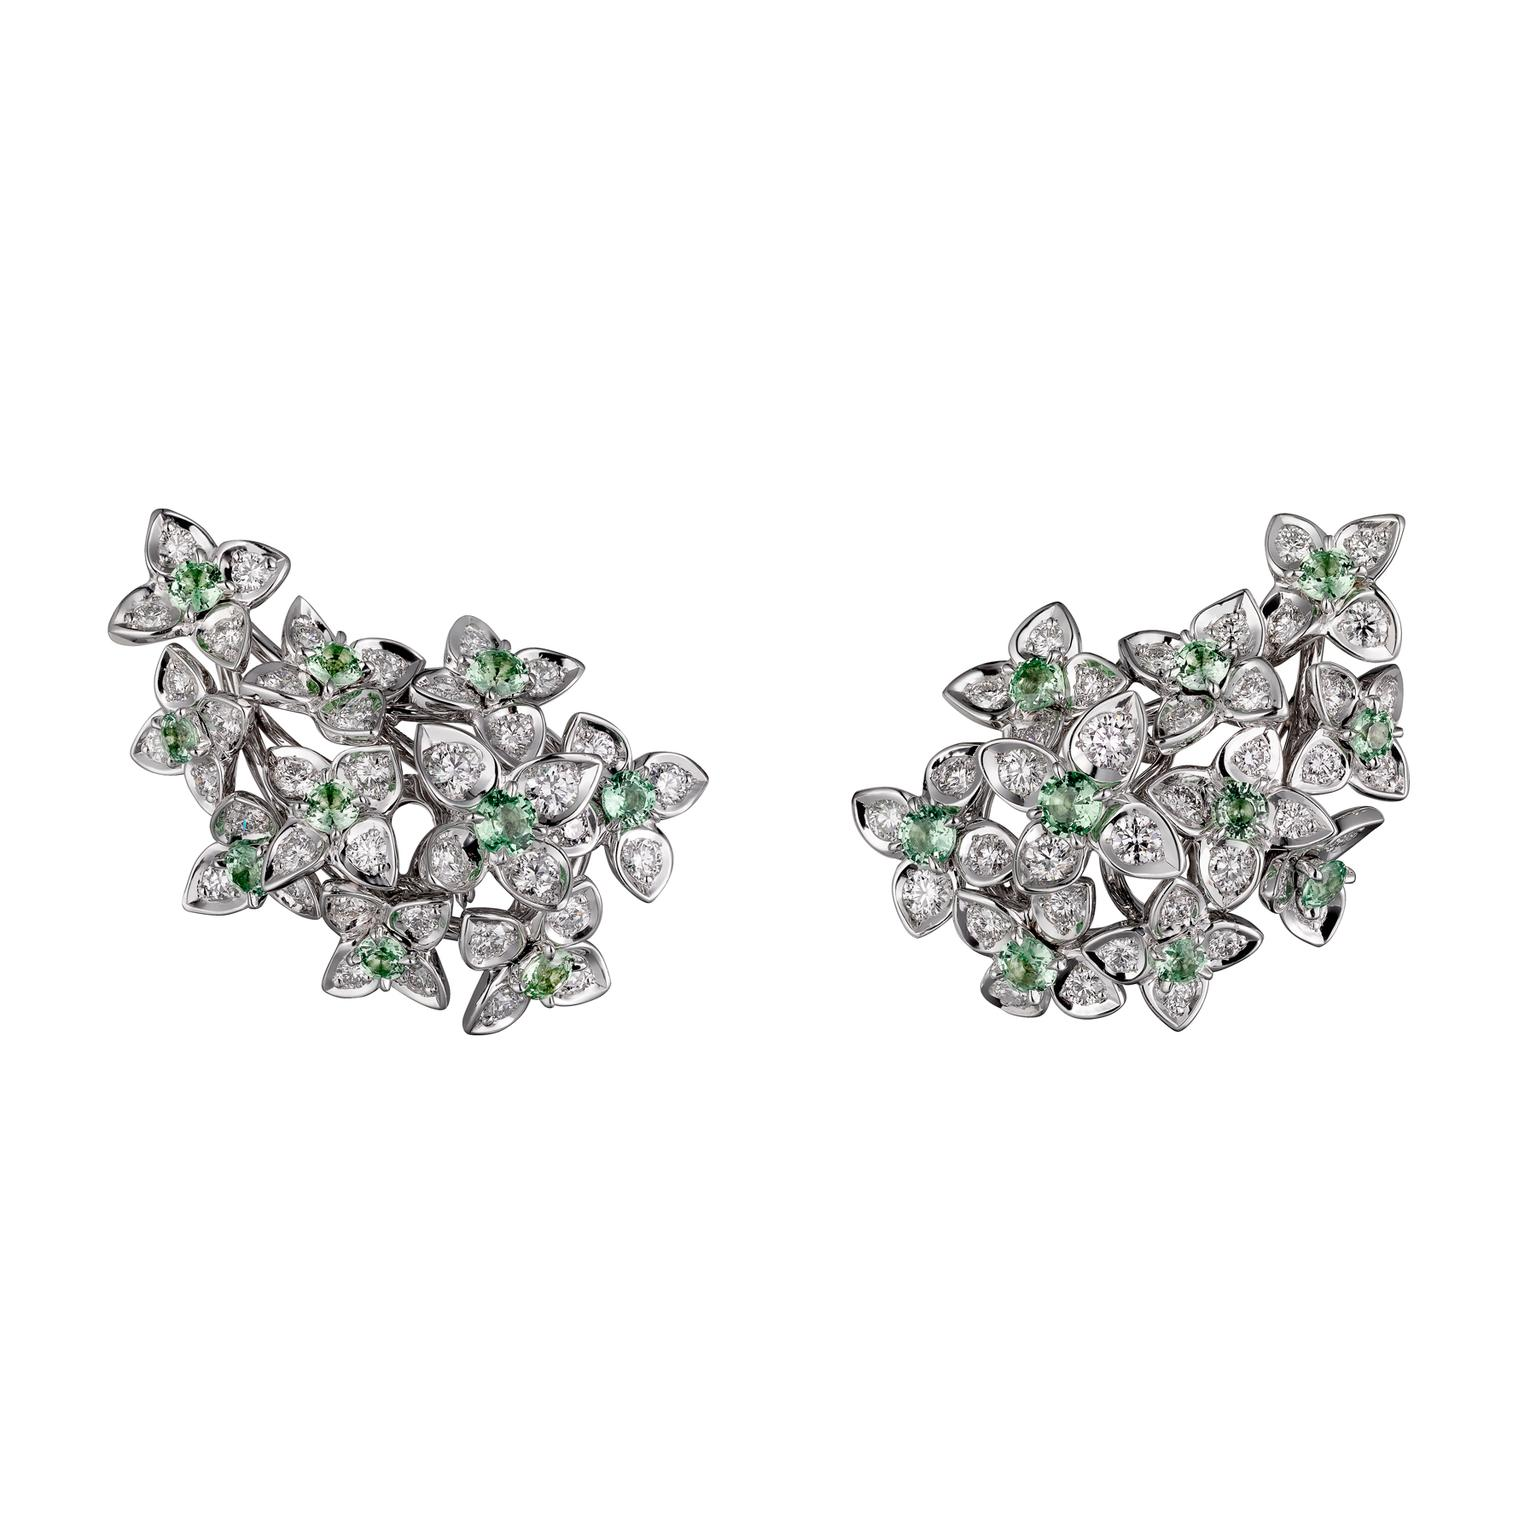 Cartier Magicien Mandragore diamond earrings with tsavorite garnets